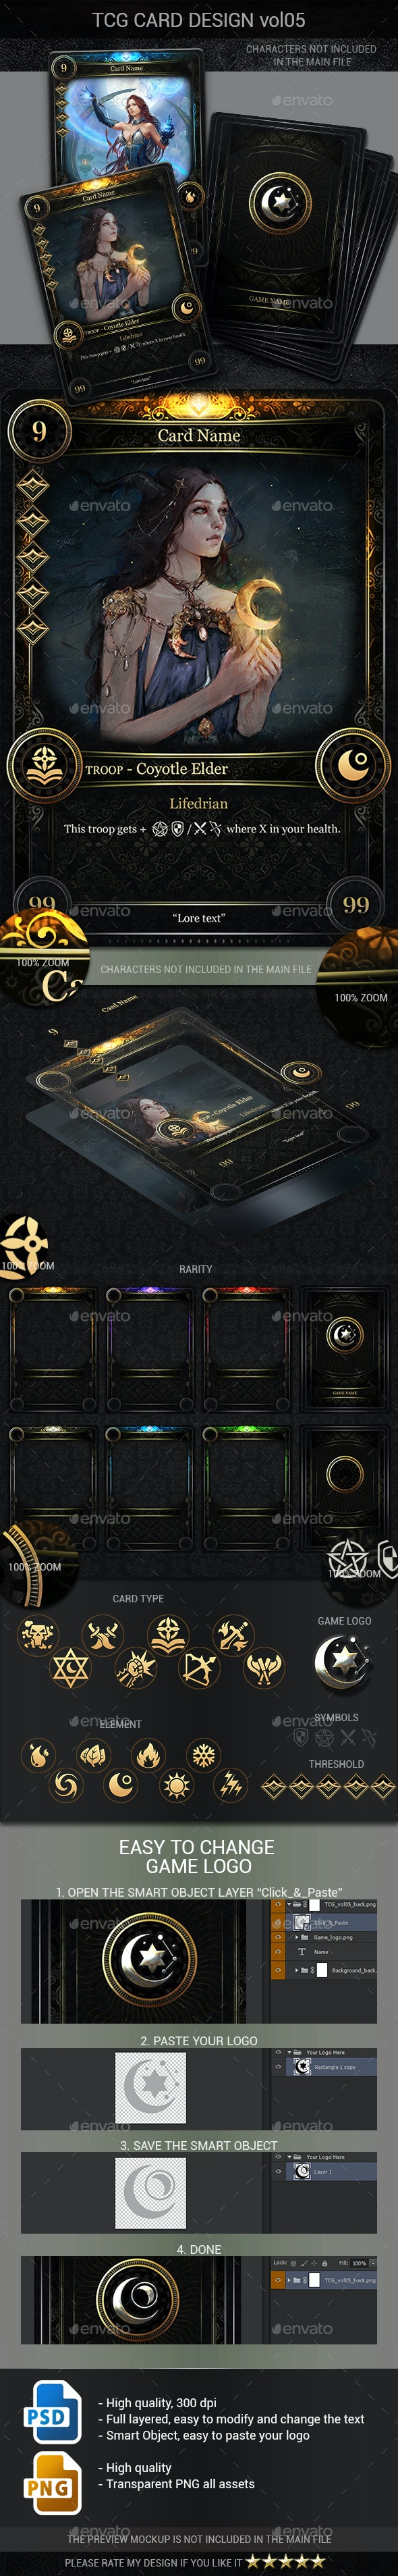 TCG Card Design Vol 5 - Miscellaneous Game Assets